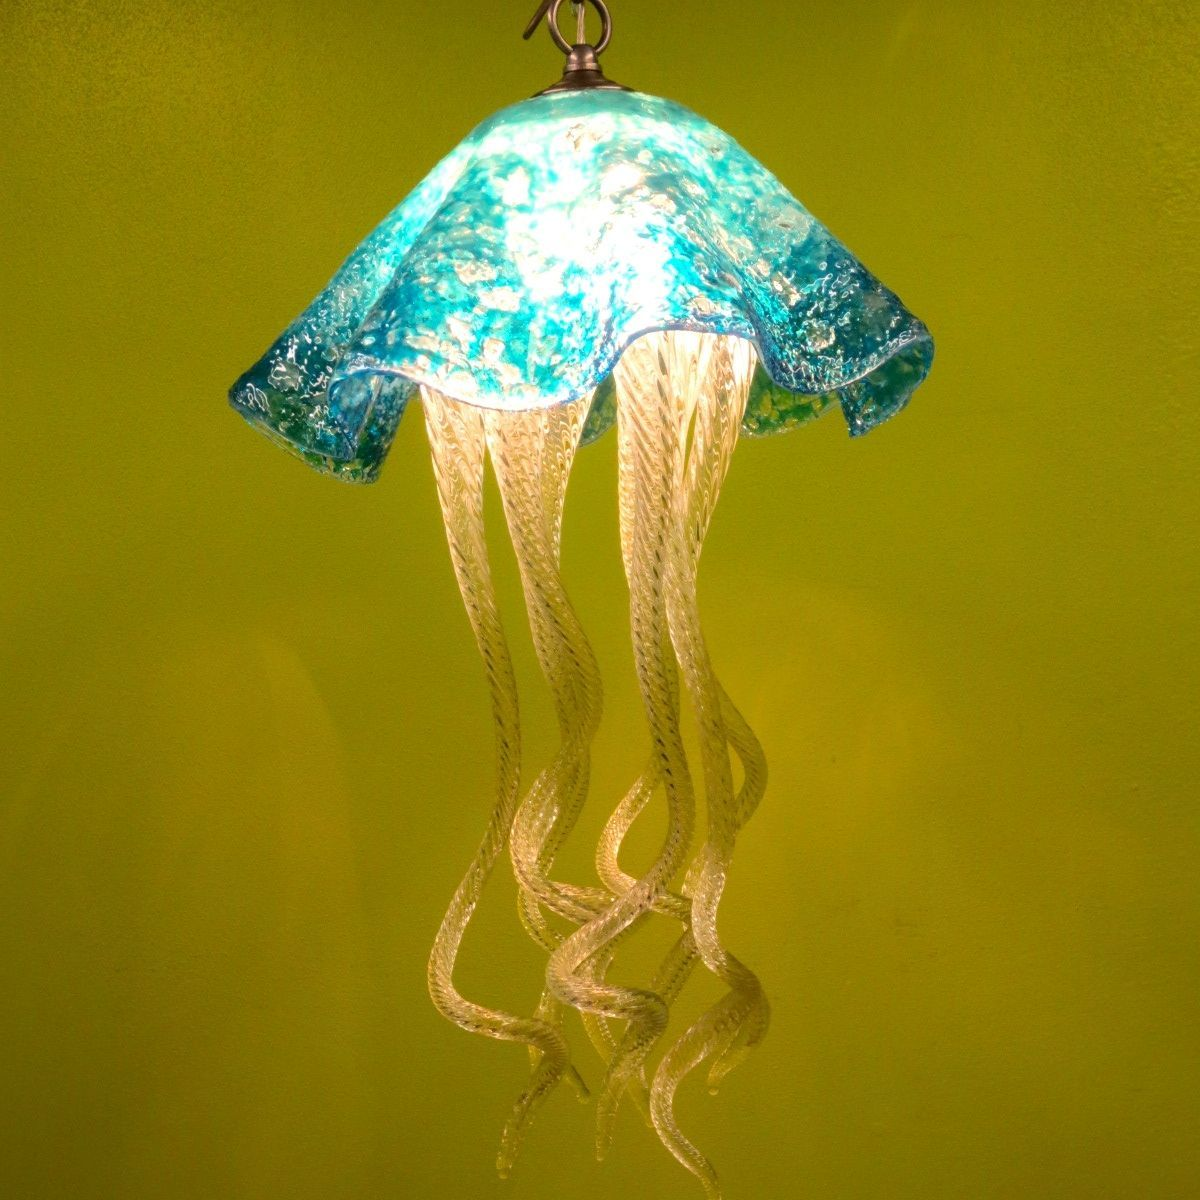 Anthony primo primo glass lighting long branch nj light up this interesting jellyfish is made with fused and blown glass the head of the jellyfish is made with clear turquoise and white crushed glass aloadofball Choice Image